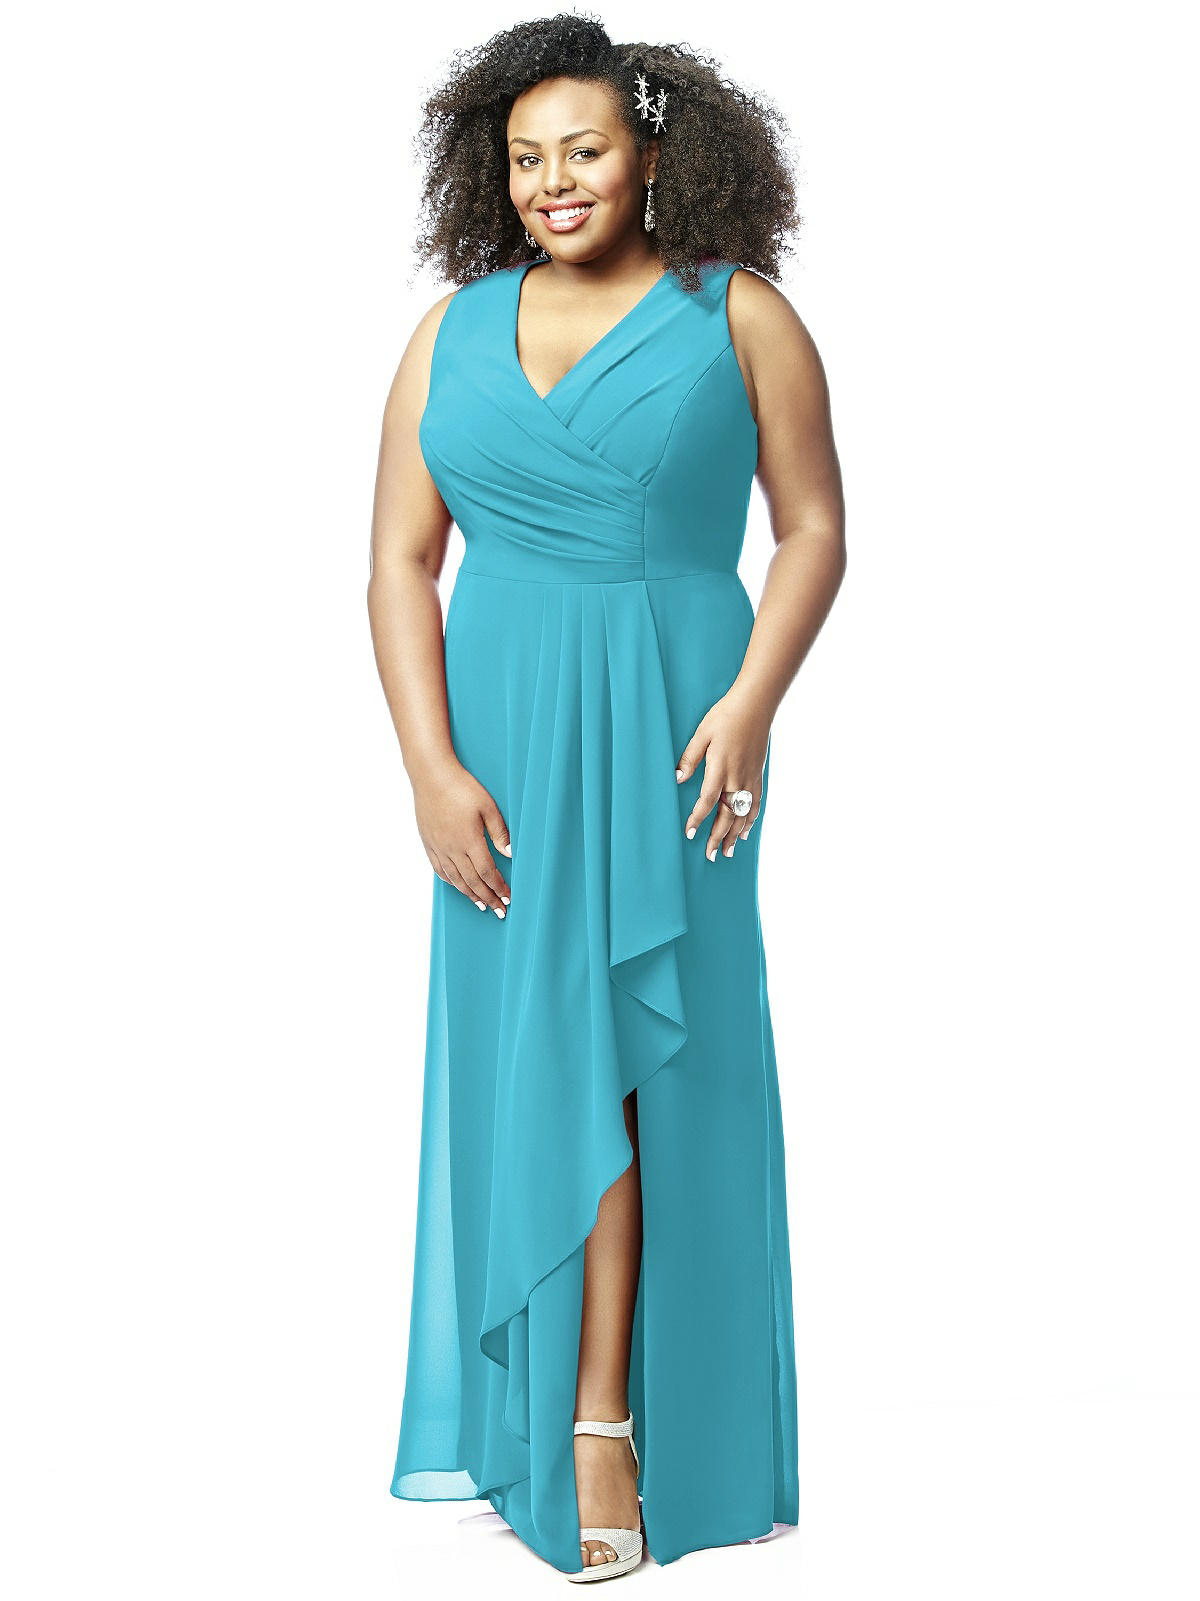 10 bridesmaids dresses for hot weather days plus size turquoise bridesmaid dress ombrellifo Gallery